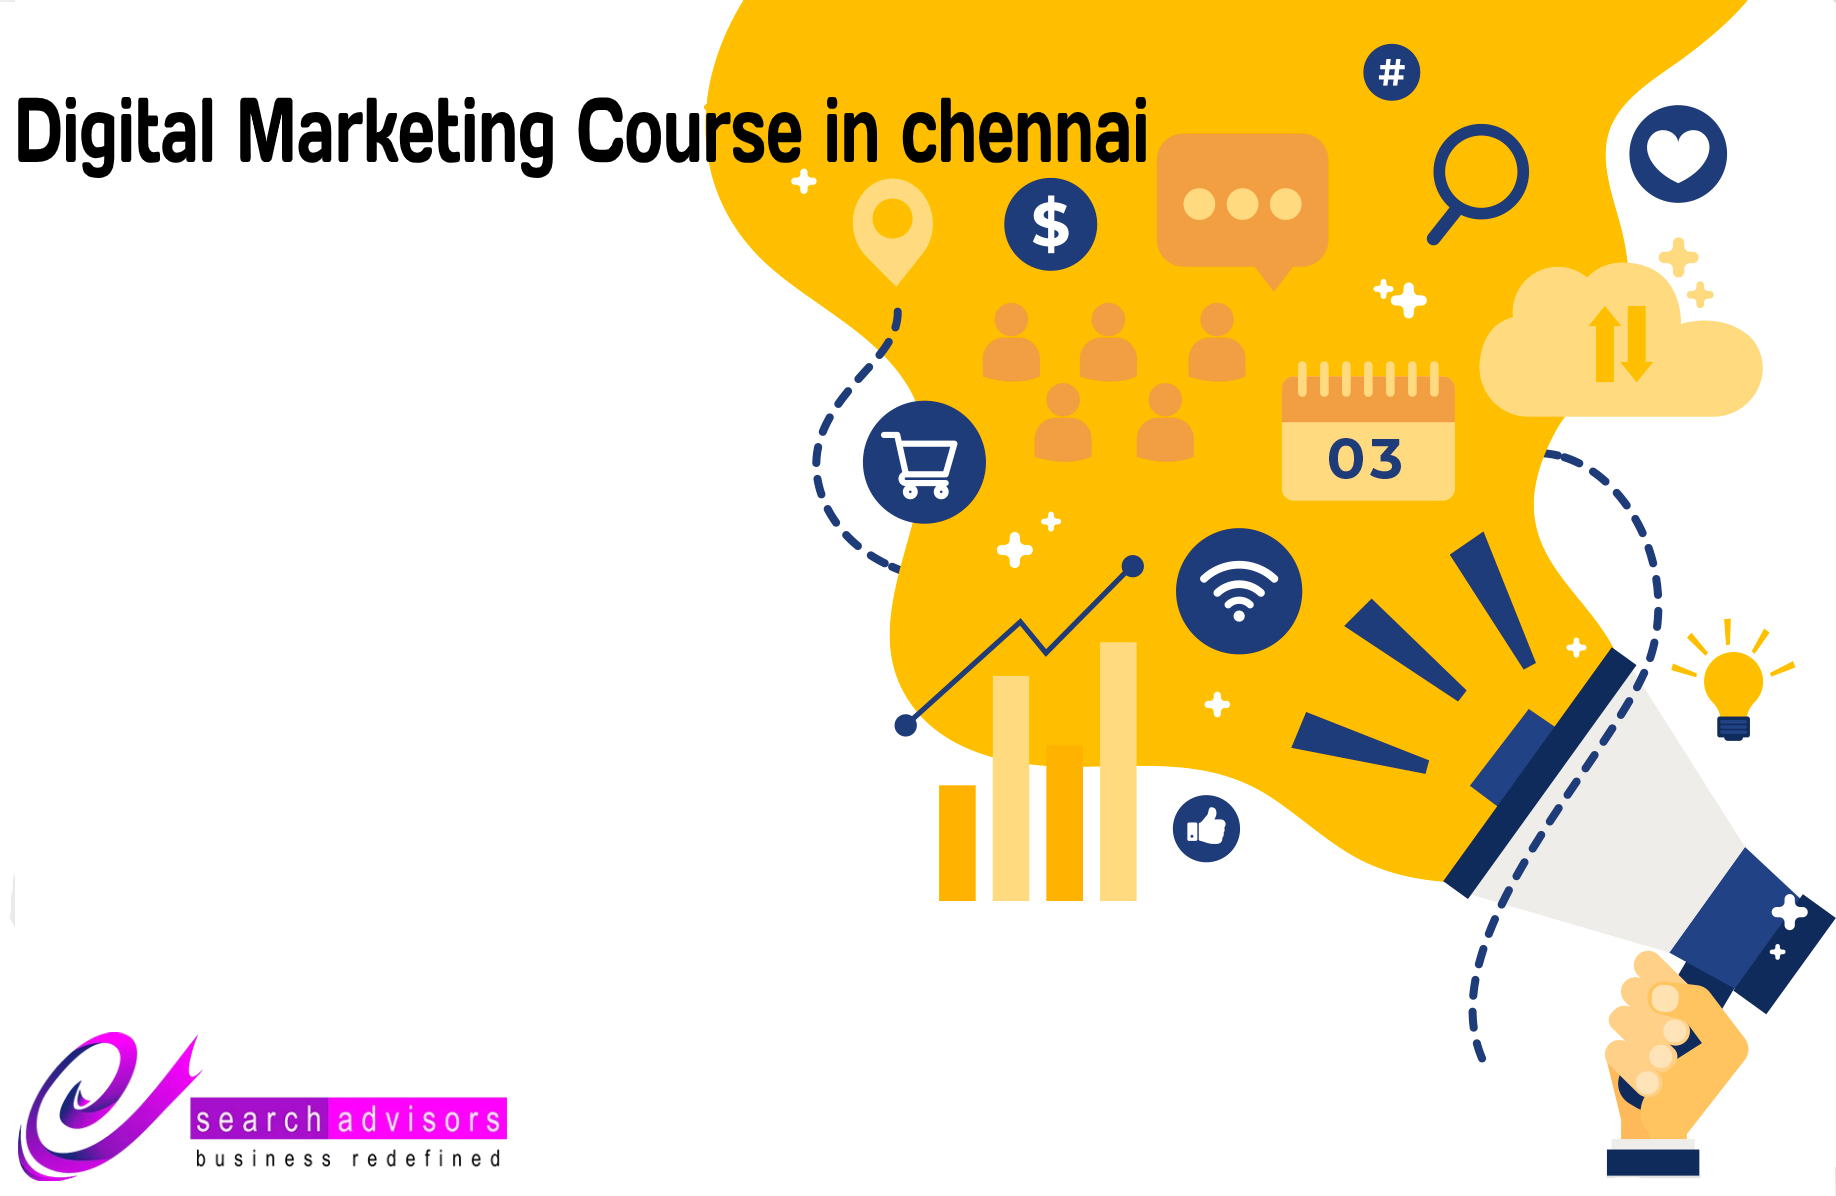 google certificated digital marketing course in chennai-Classes-Other Classes-Chennai